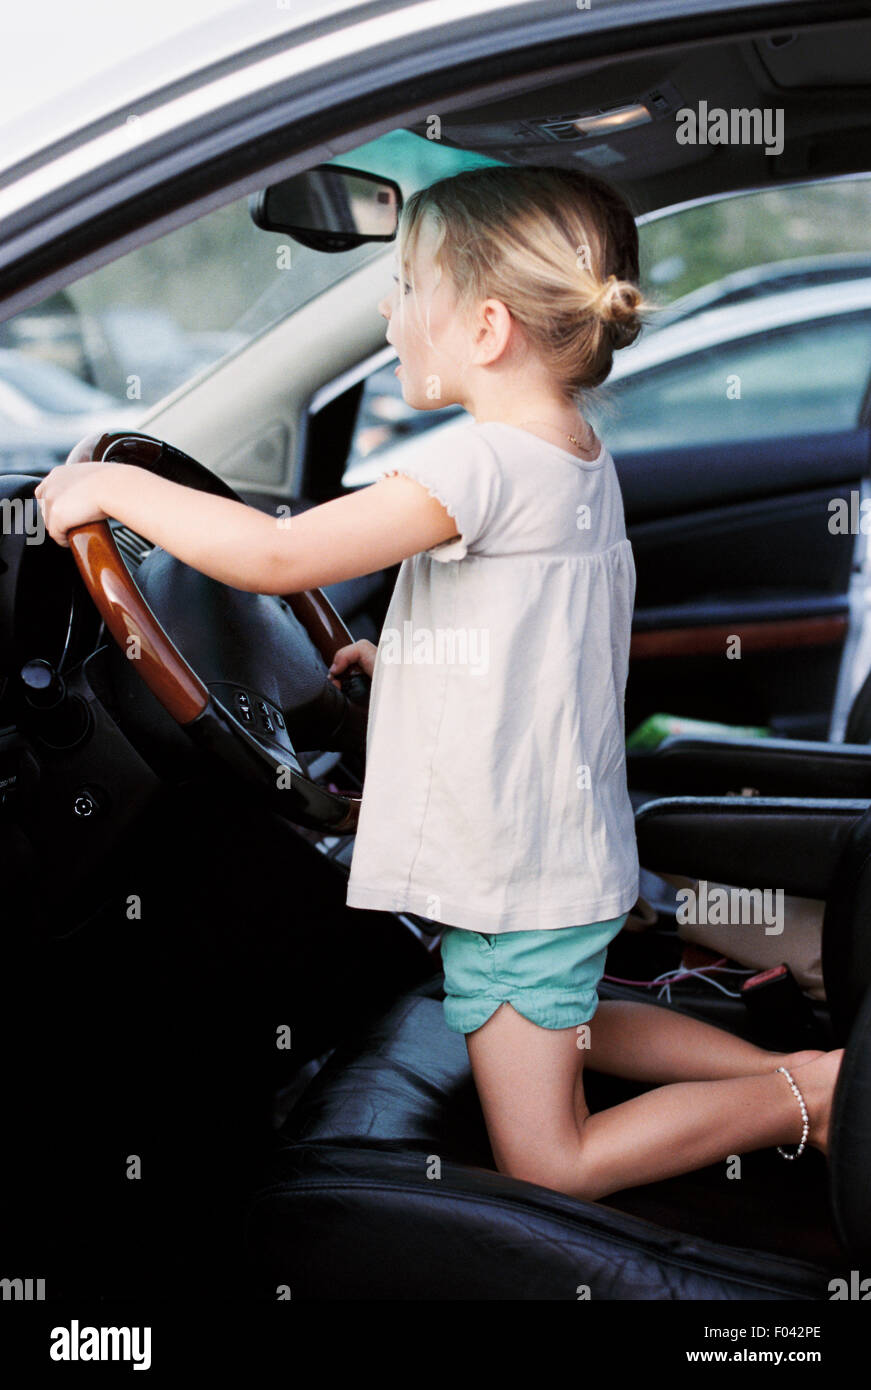 Young girl kneeling on the drivers seat of a car, holding the steering wheel, pretending to drive. - Stock Image